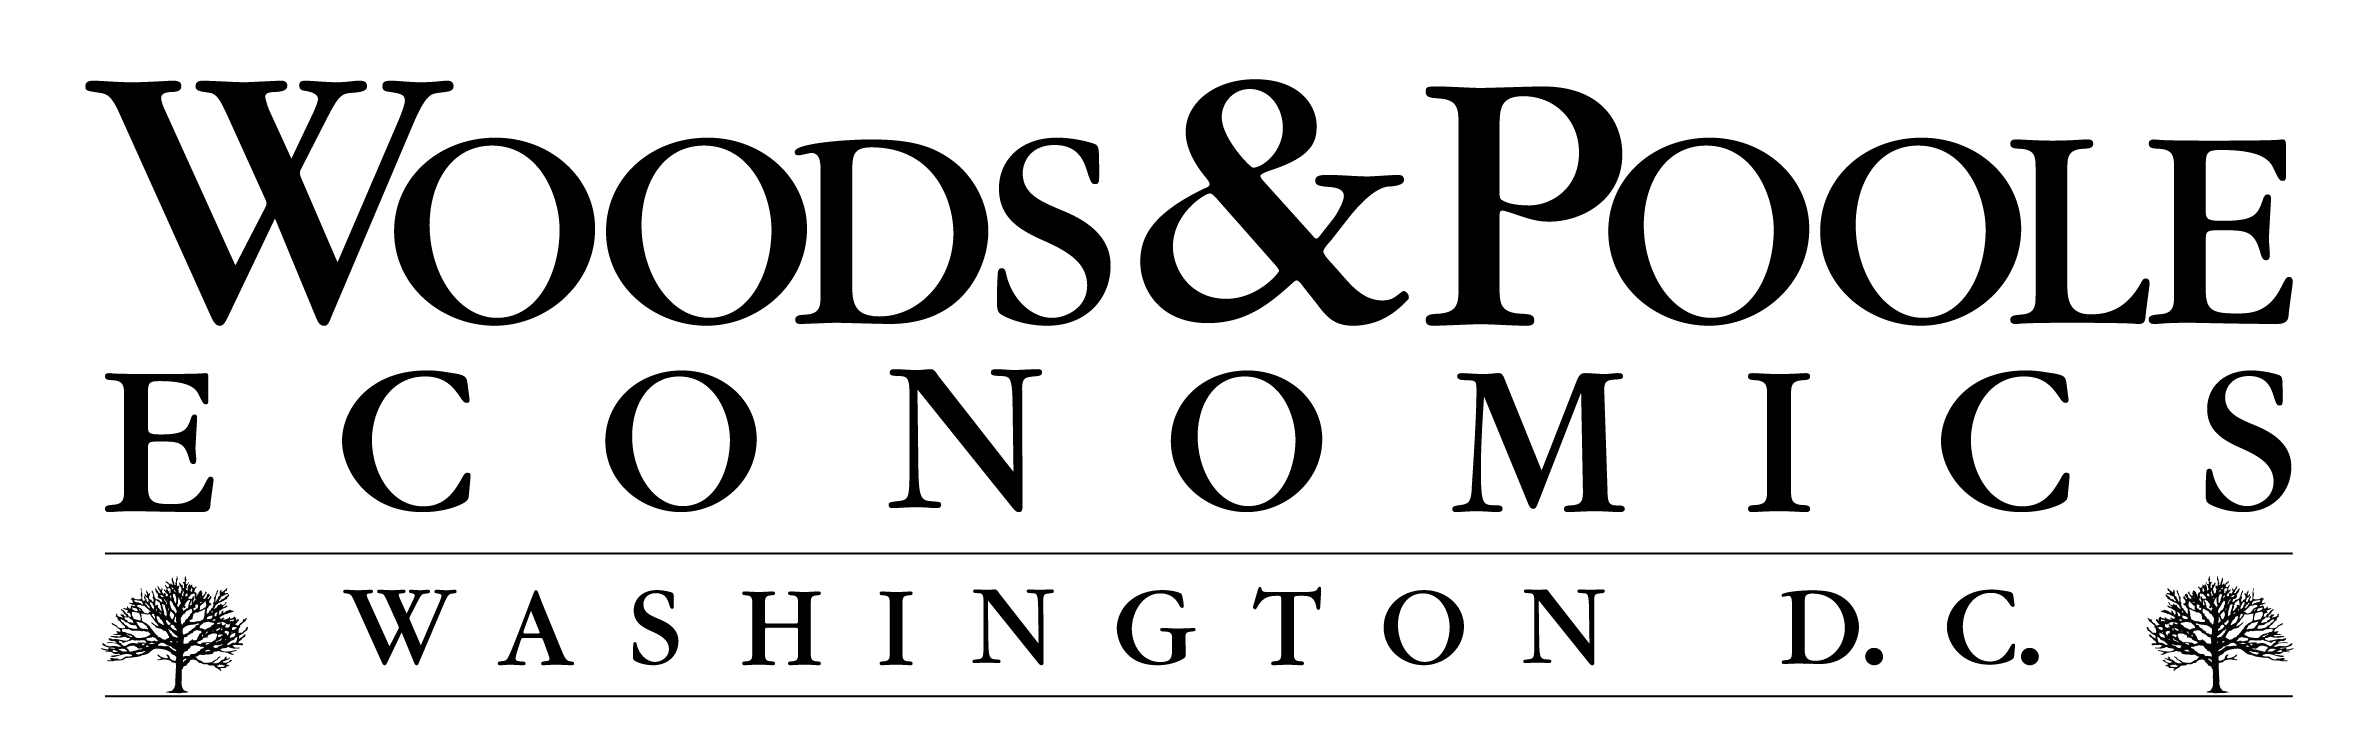 WILMINGTON DE-MD-NJ (FIPS 48864) | Woods & Poole Economics, Inc